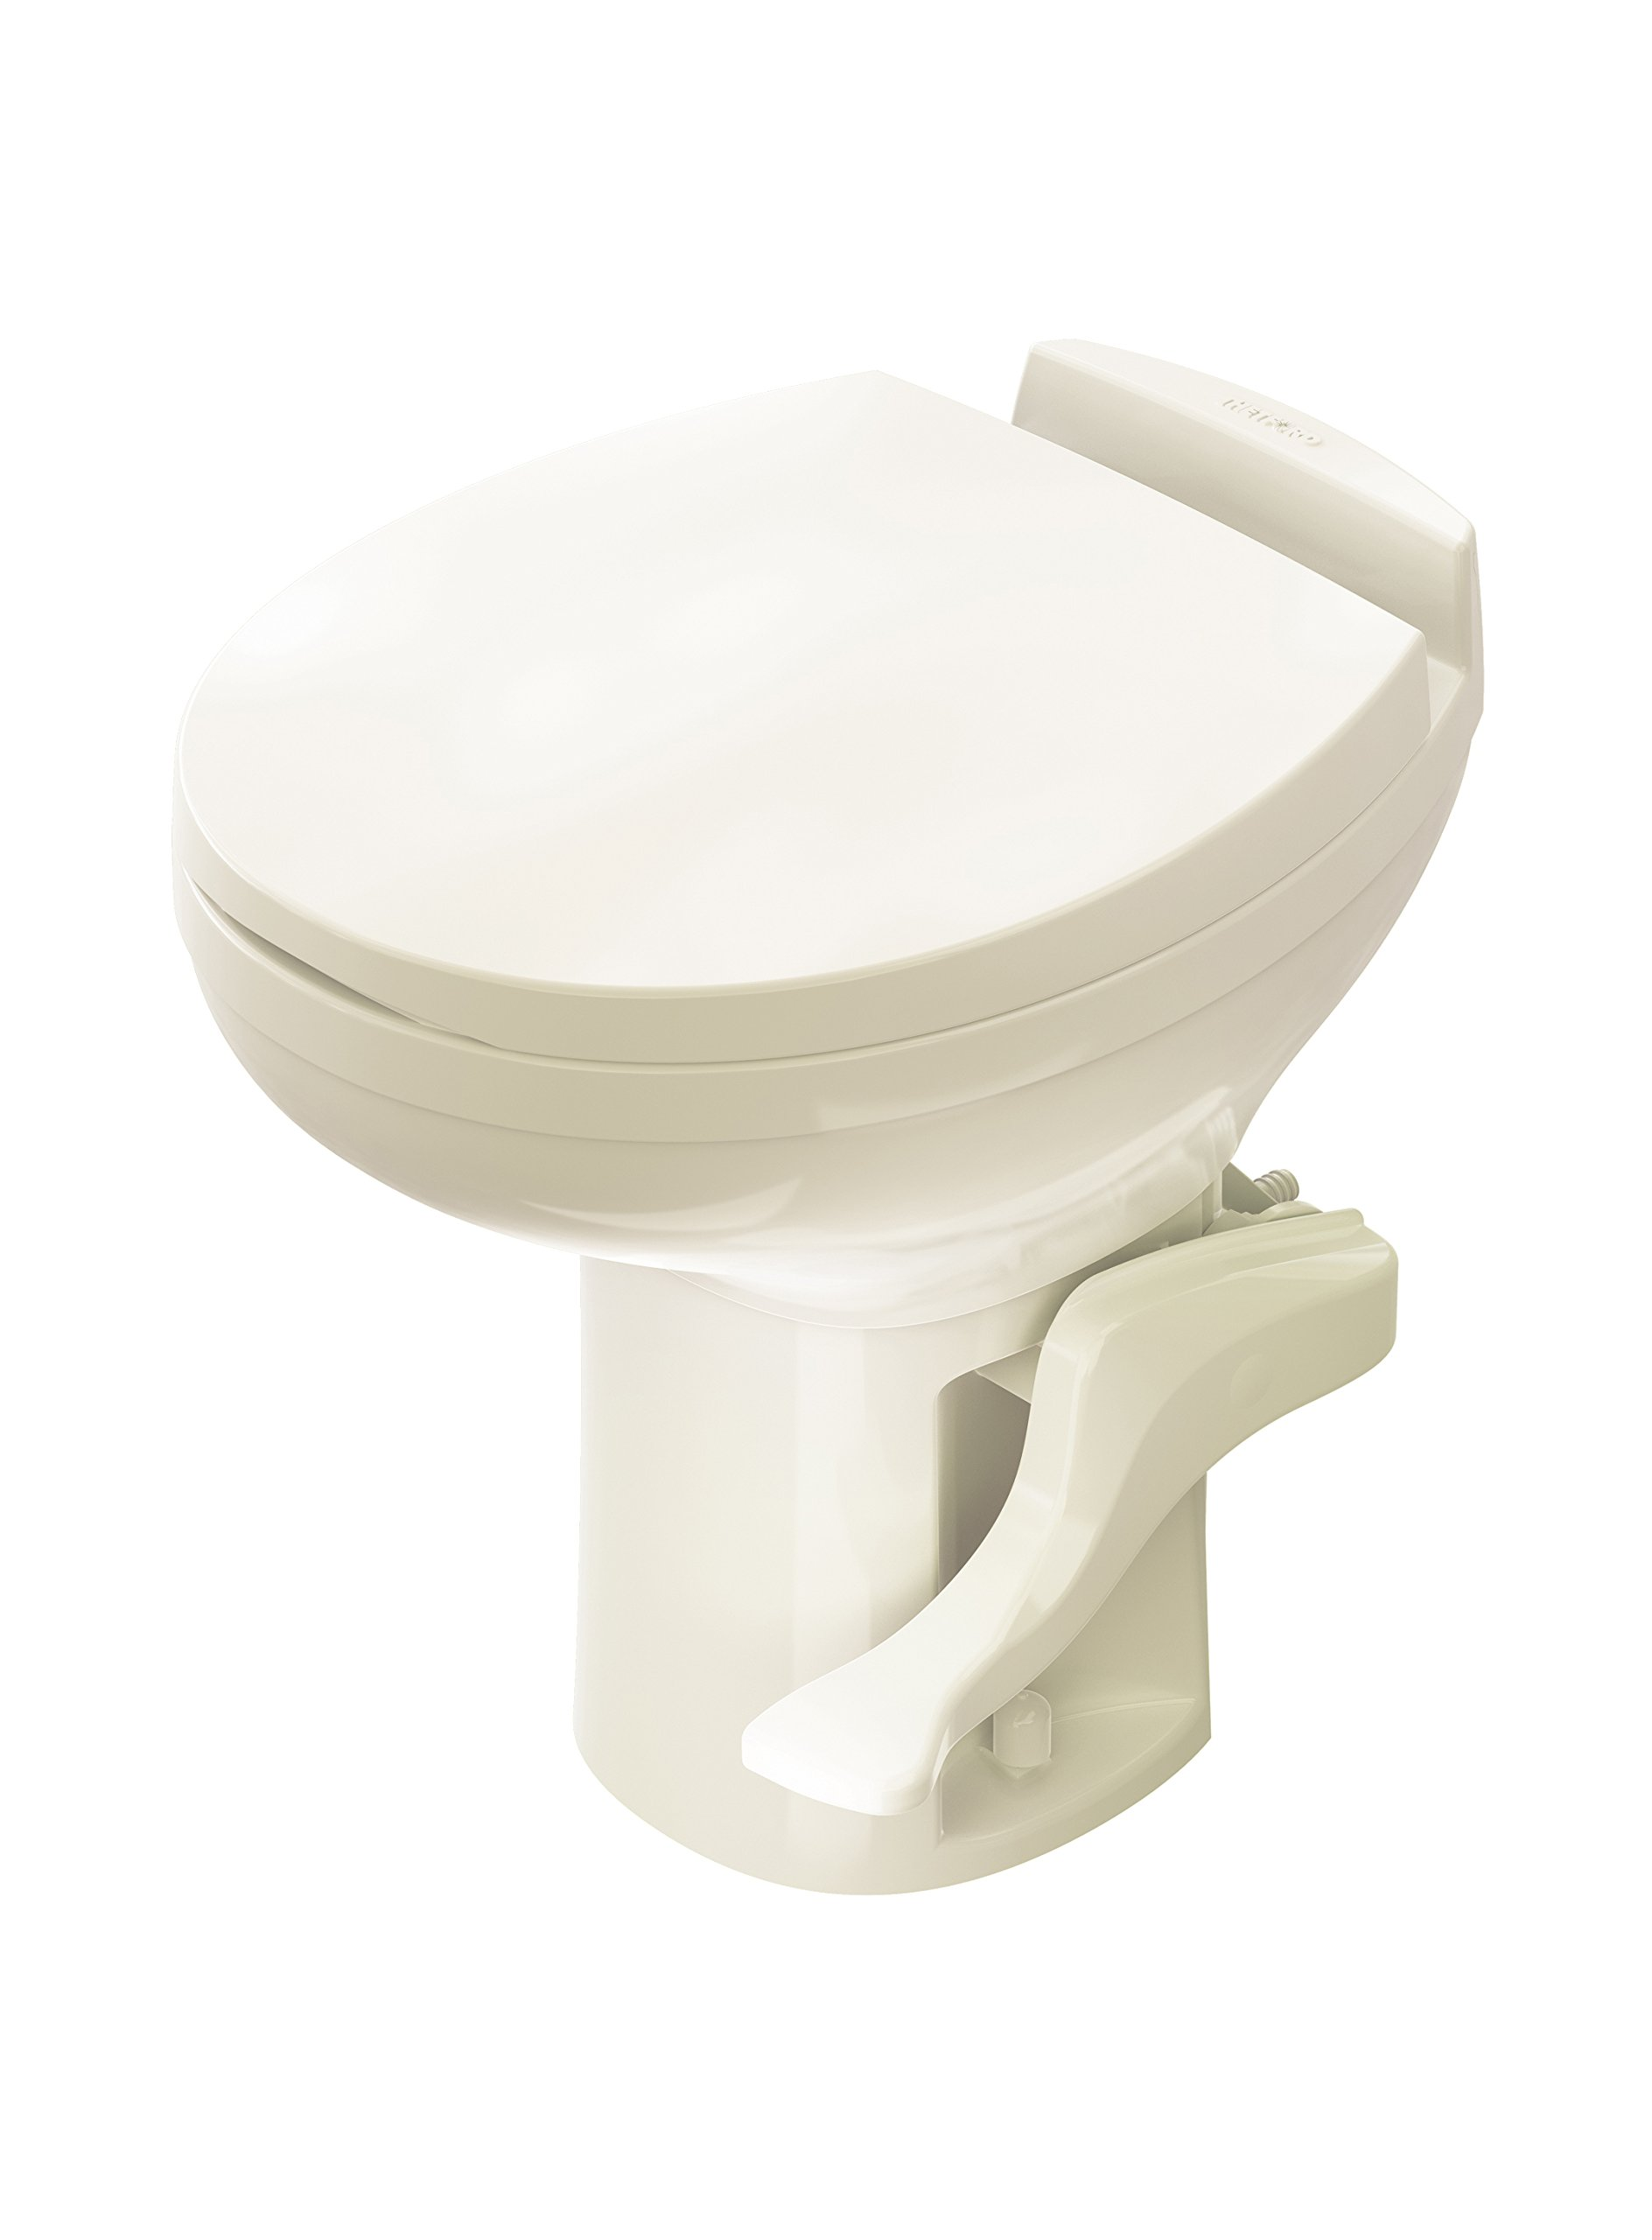 Aqua-Magic Residence RV Toilet / High Profile / Bone - Thetford 42171 by Thetford